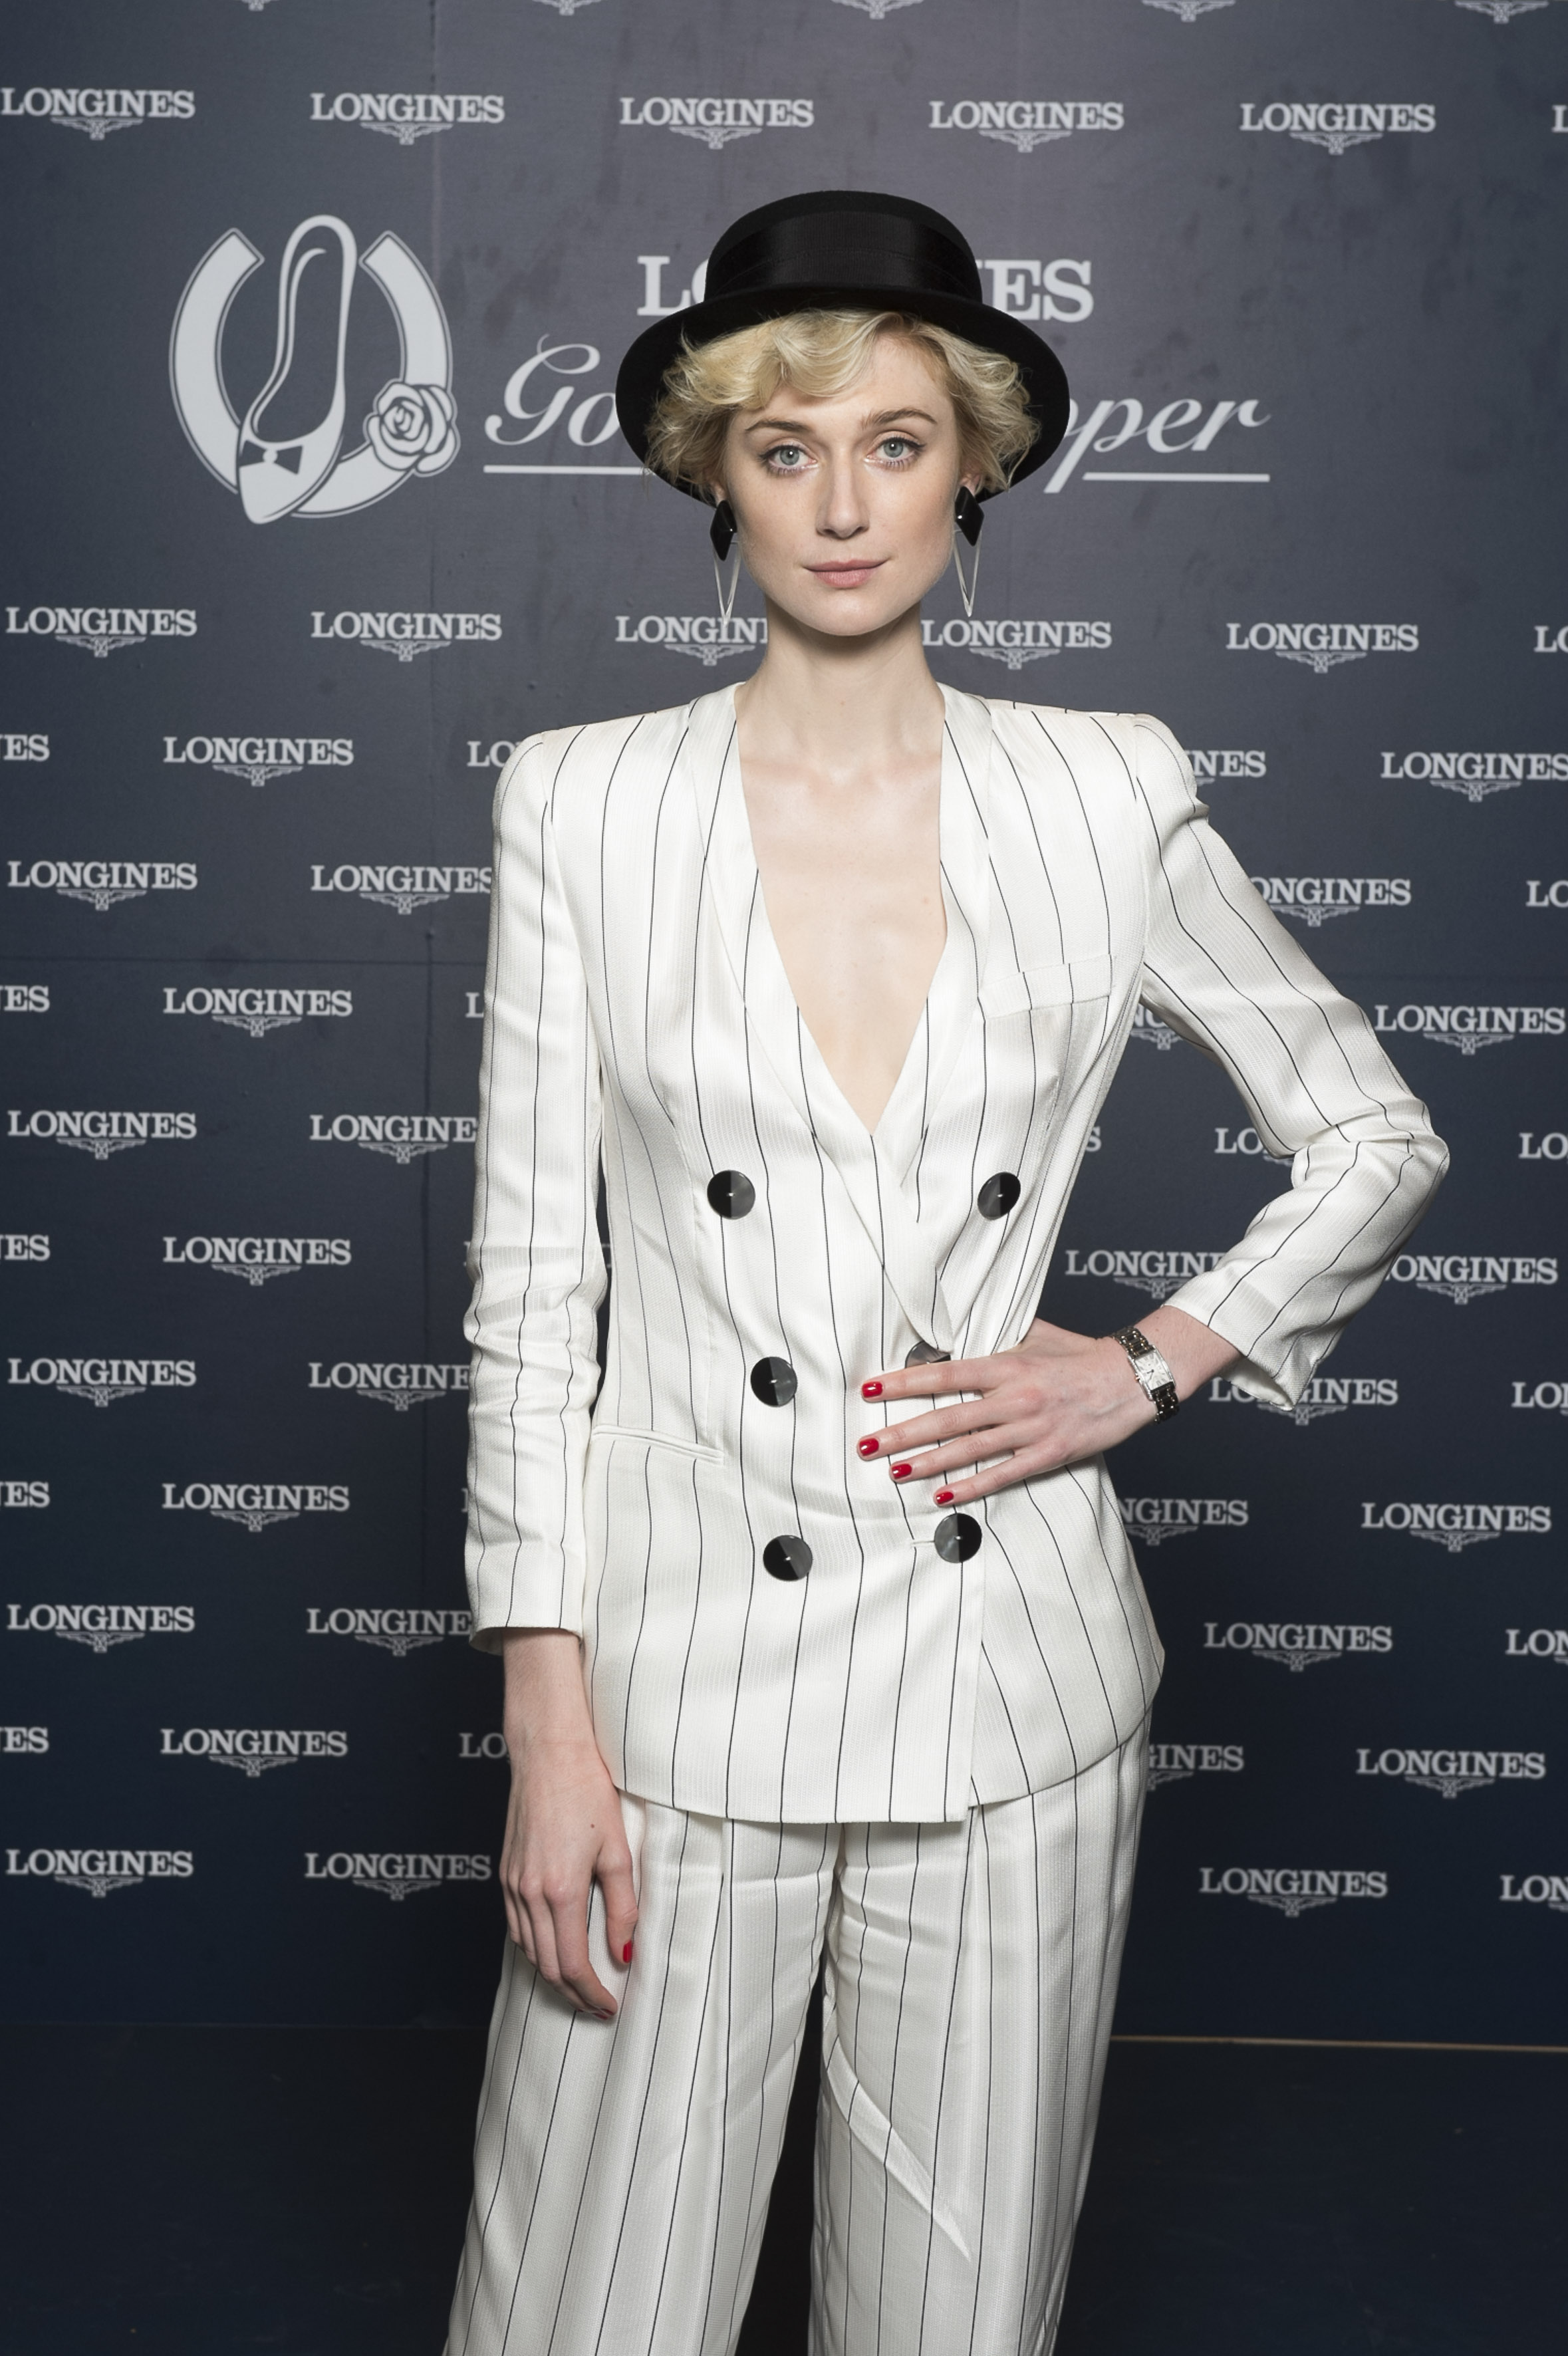 <p>Prestigious Swiss watchmaker, Longines, entered the autumn racing carnival in style over the weekend, hosting a luncheon in the Grand Pavilion at Rosehill Gardens Racecourse. </p> <p>Actress Elizabeth Debicki from The Man From Uncle, who is the brand's Golden Slipper ambassador, played hostess to a bevy of high profile guests who were attending in celebration of the lucrative race. </p> <p> Among the line-up of guests were radio host Emma Freedman, media identities Laura Dundovic and Nikki Philips , I'm a Celebrity … Get me out of here! contestant Tegan Martin and racing personality Tom Waterhouse, all shining on the red carpet. Showing off an array of ensembles, from striking red dresses, eye-catching hats and pinstripe pant suits, they definitely set the tone in the style stakes for autumn racing.</p> <p>Longines Golden Slipper ambassador, Elizabeth Debicki.</p>